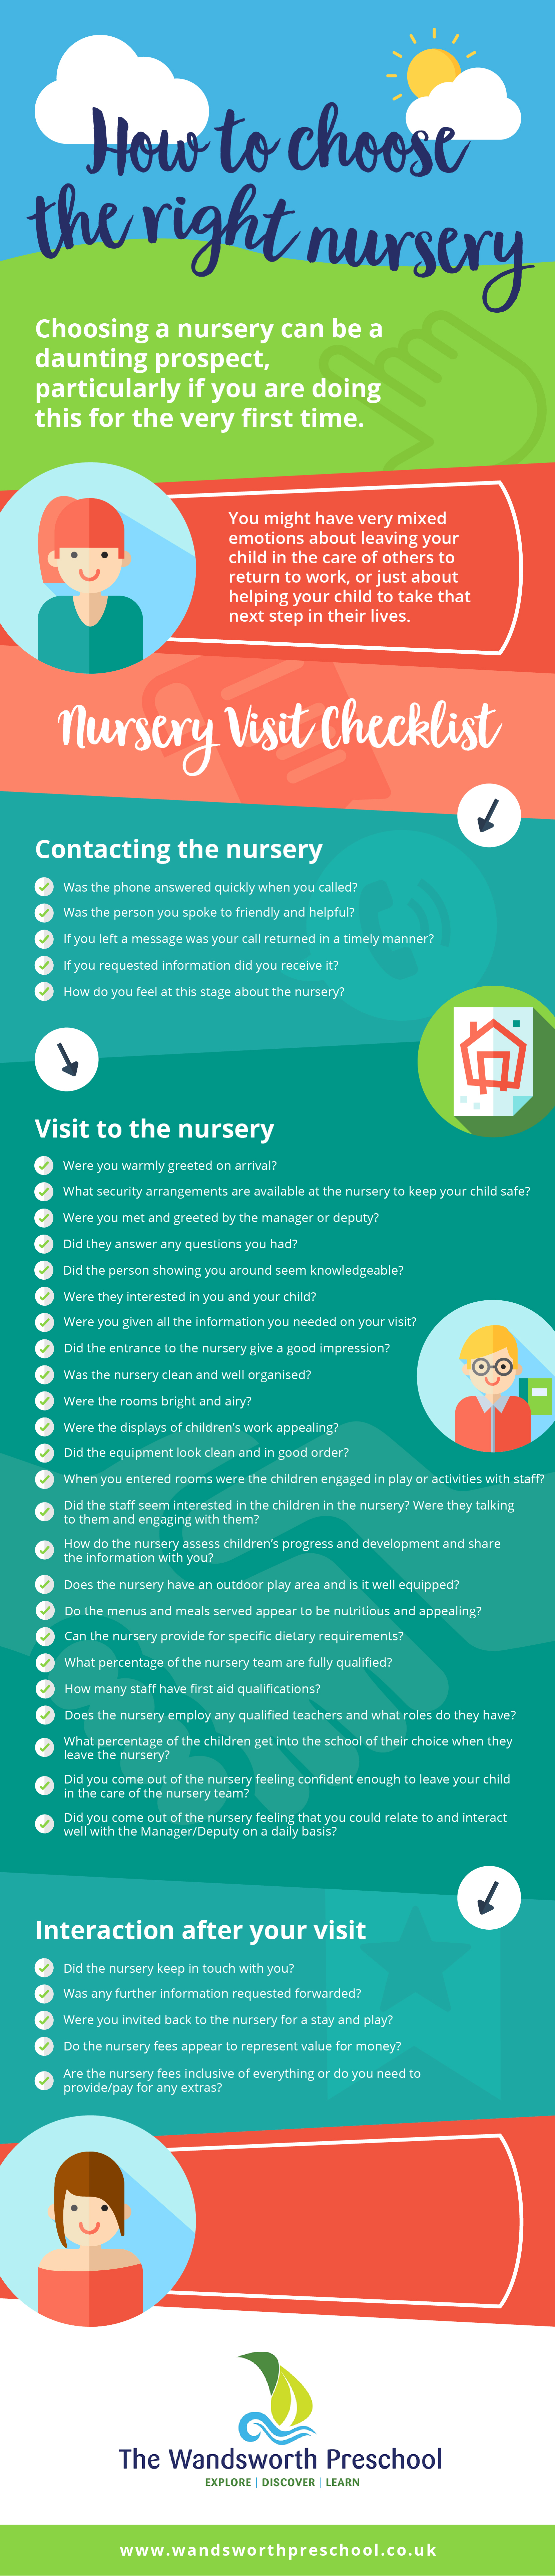 How to find the right nursery